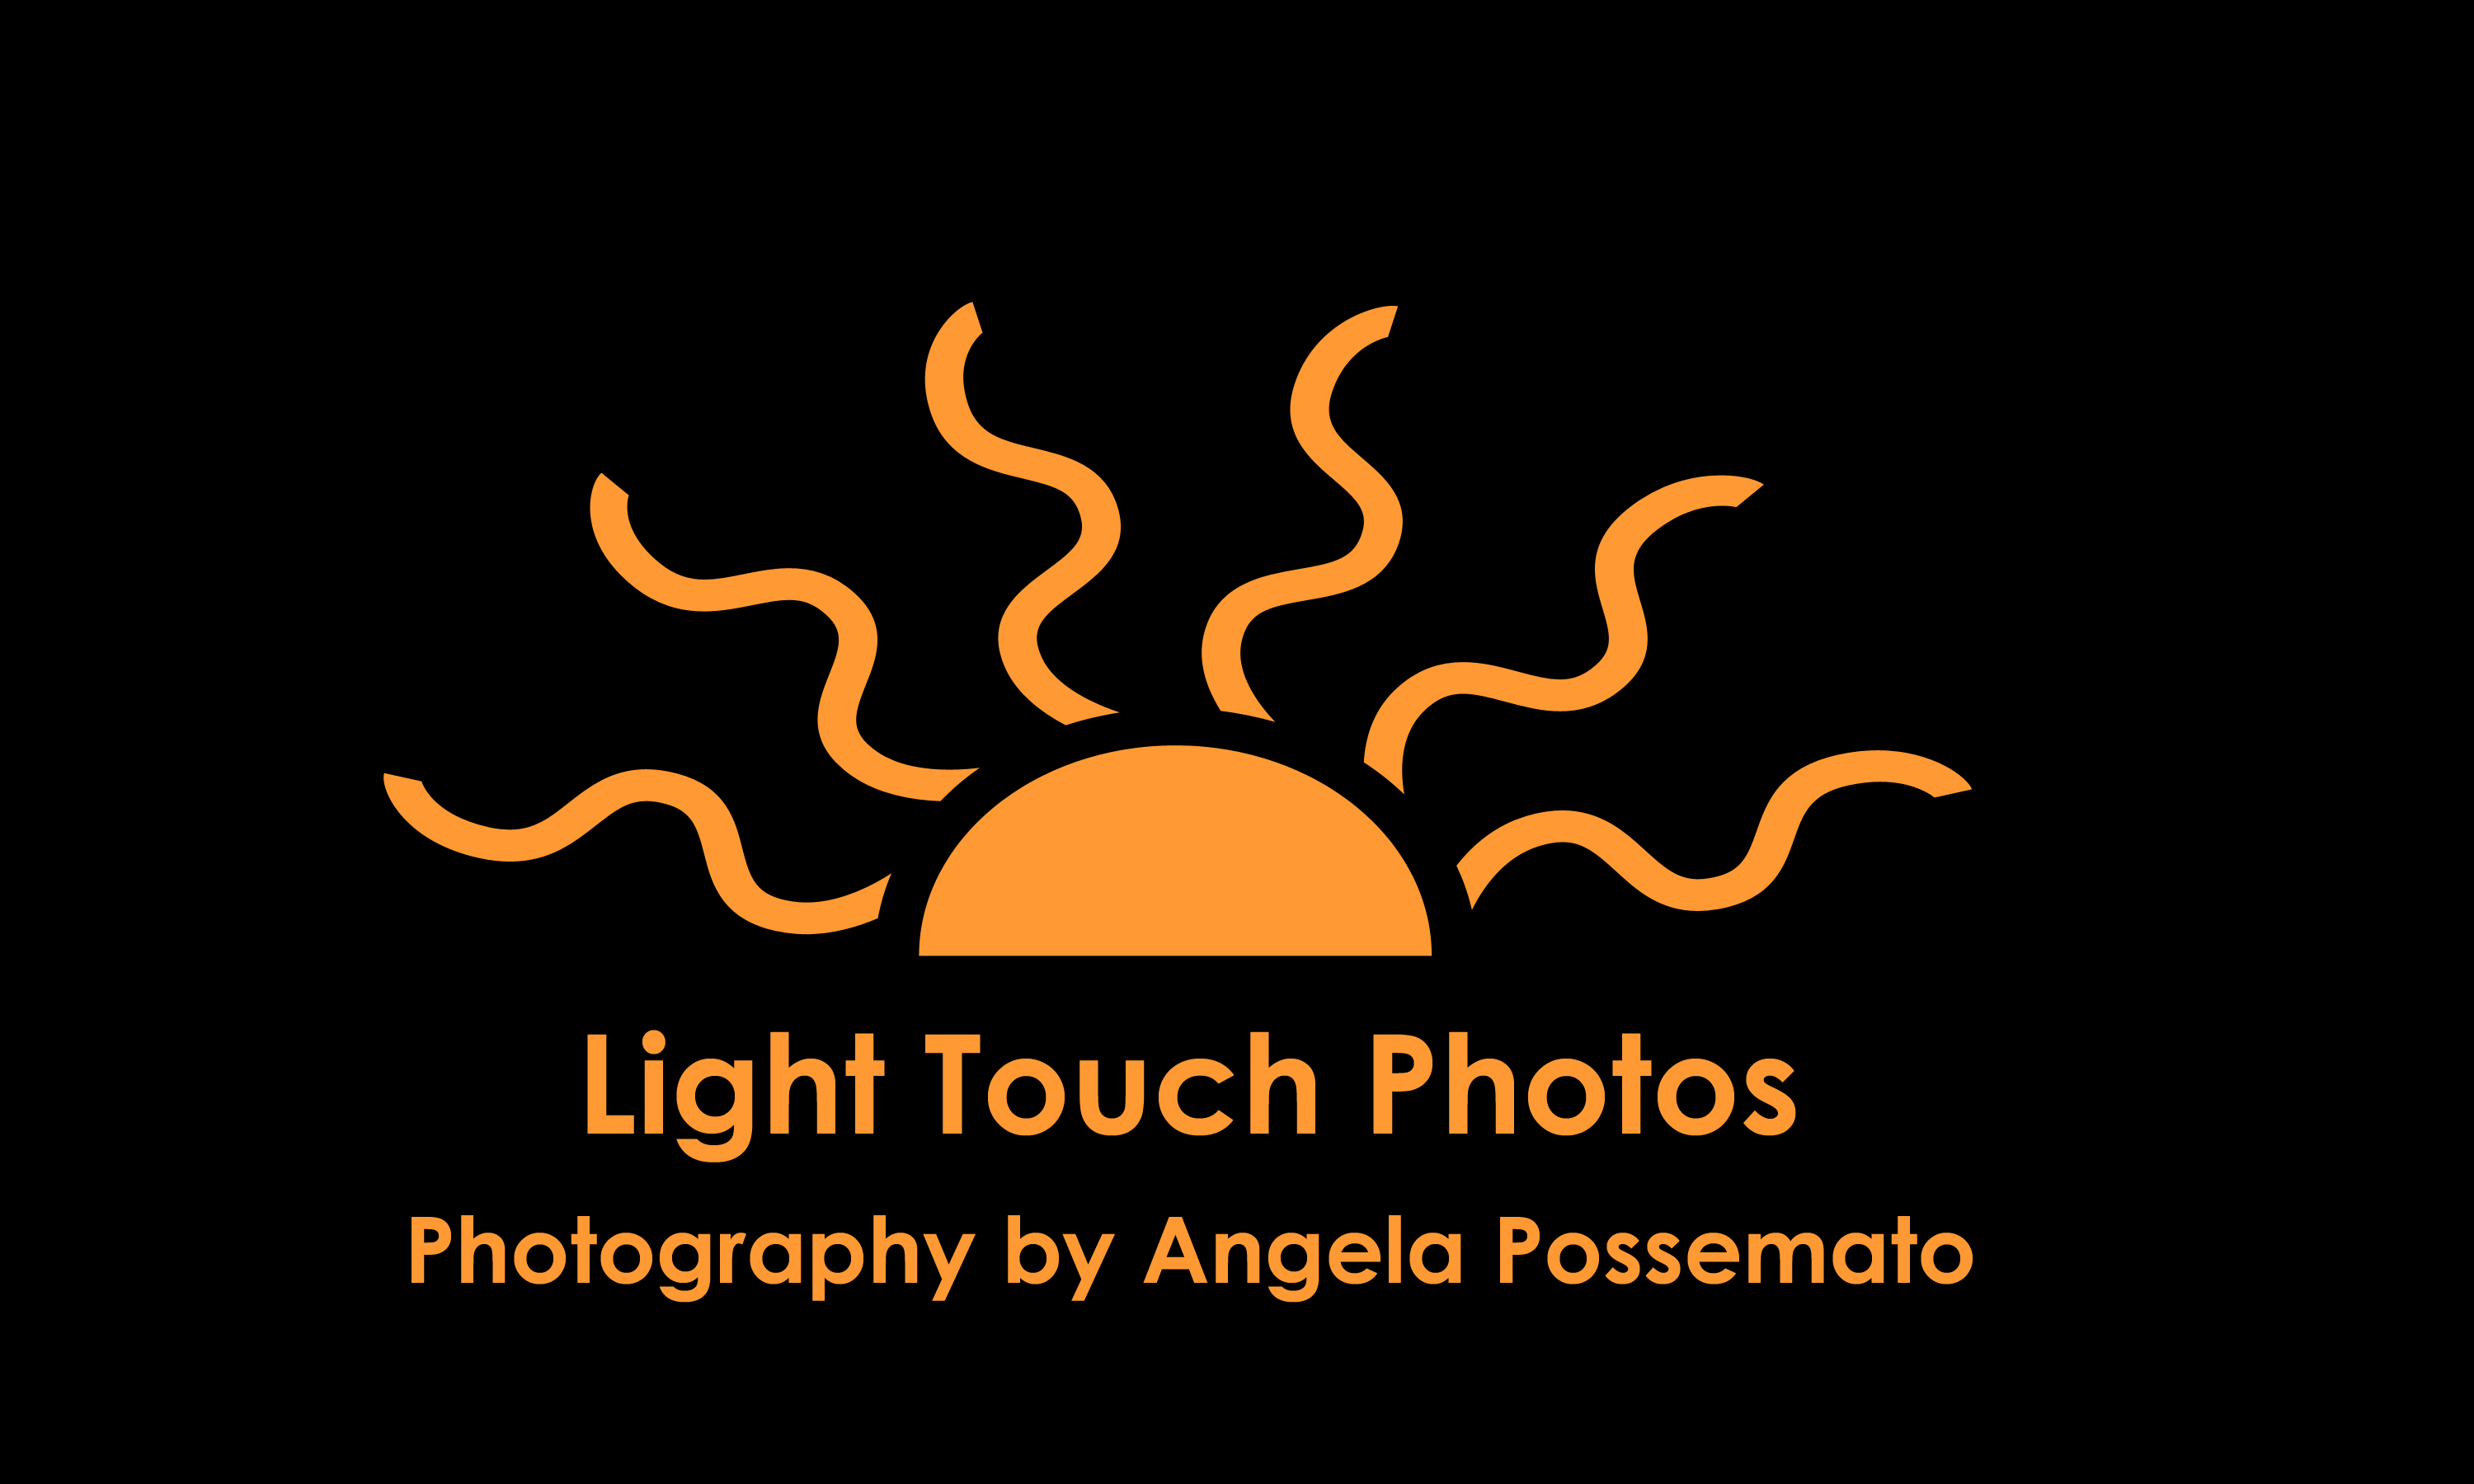 Light Touch Photos